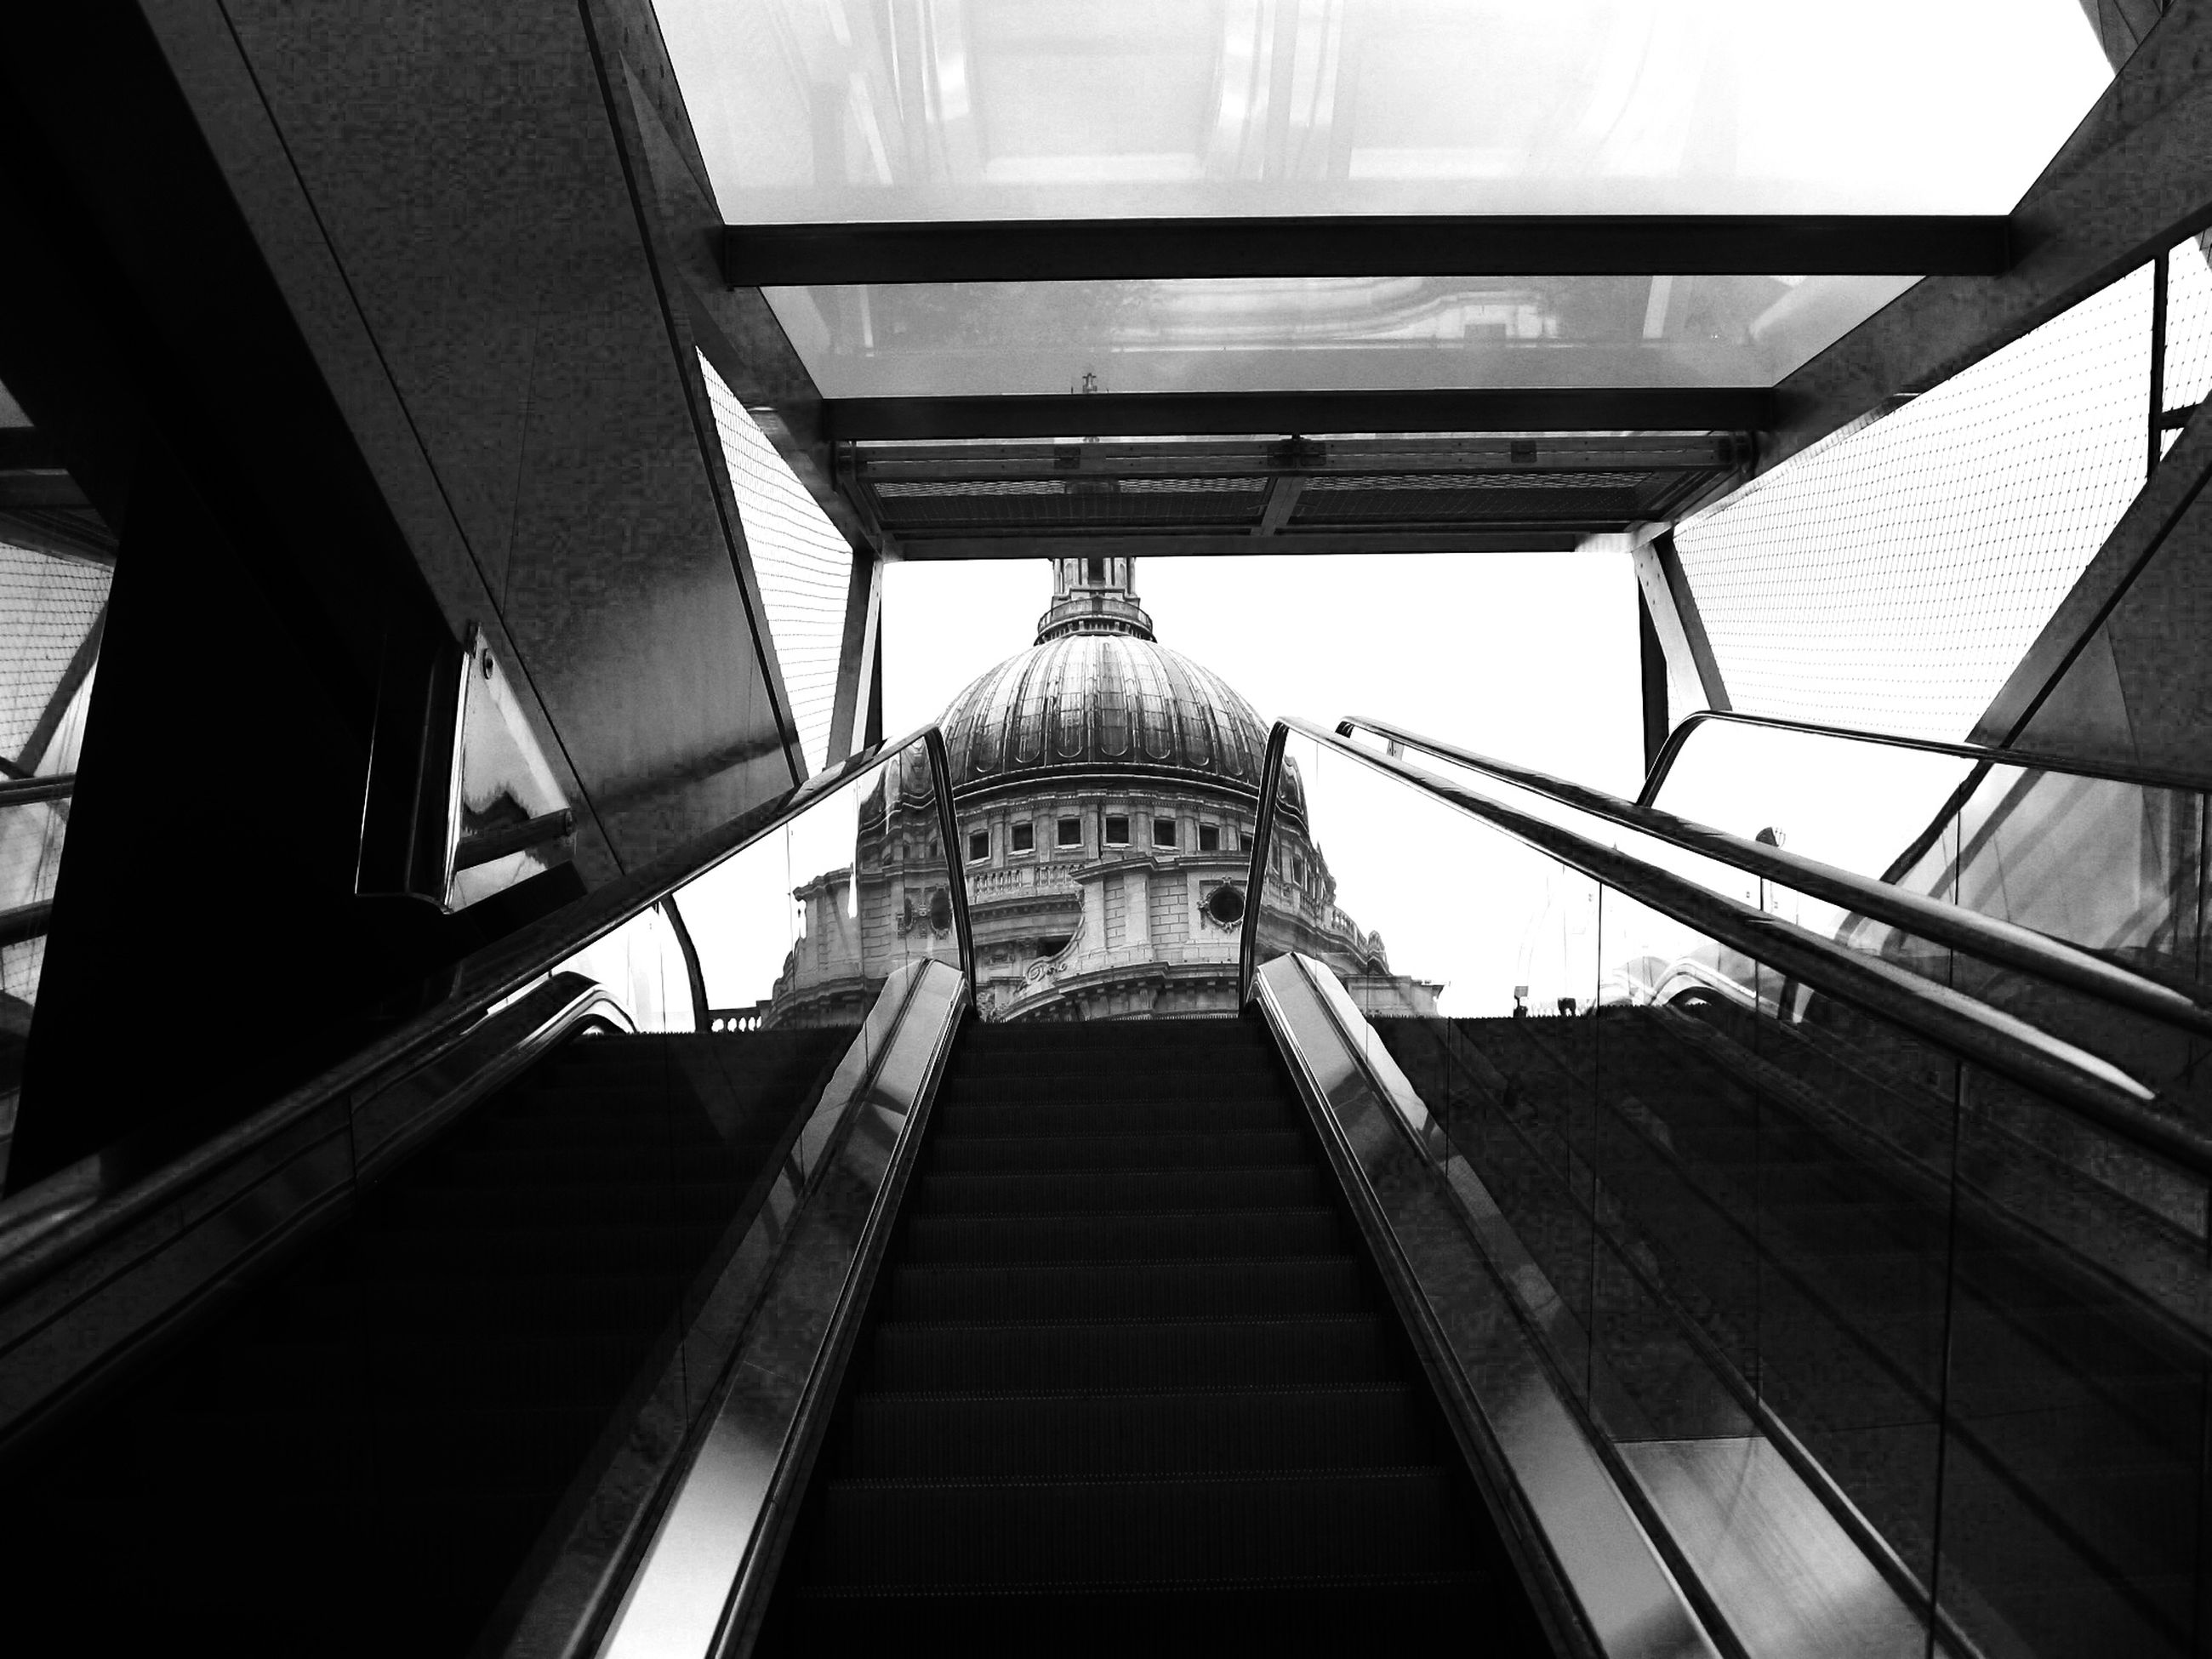 architecture, built structure, low angle view, building exterior, indoors, building, directly below, ceiling, railing, modern, staircase, steps, diminishing perspective, steps and staircases, glass - material, window, architectural feature, day, no people, sky